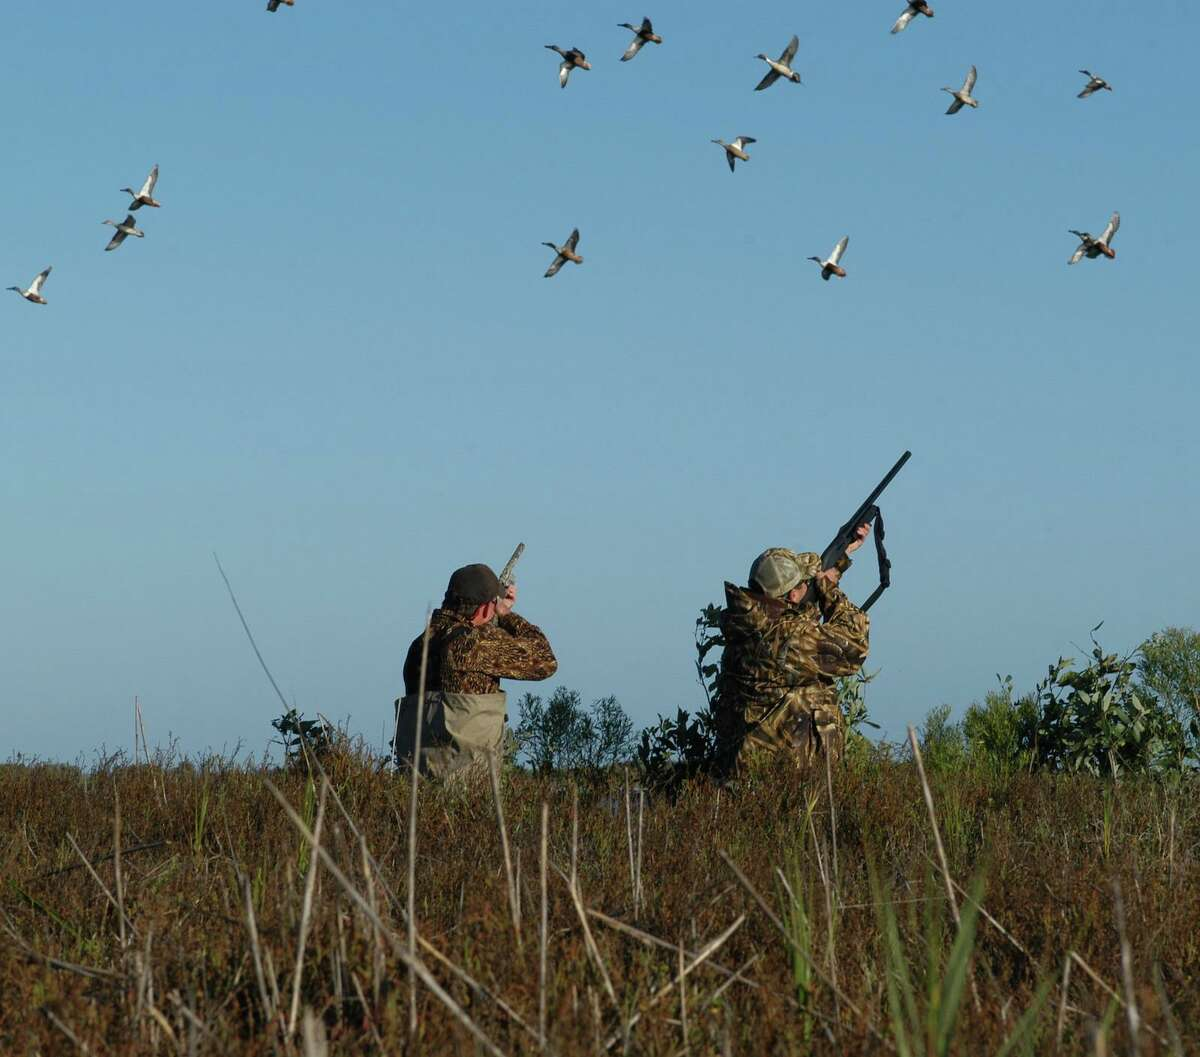 The 2020-21 duck season in Texas gets underway Nov. 14 in the state's North Zone. South Zone hunters began their season on Nov. 7; Nov. 6 in the High Plains Mallard Management Unit.